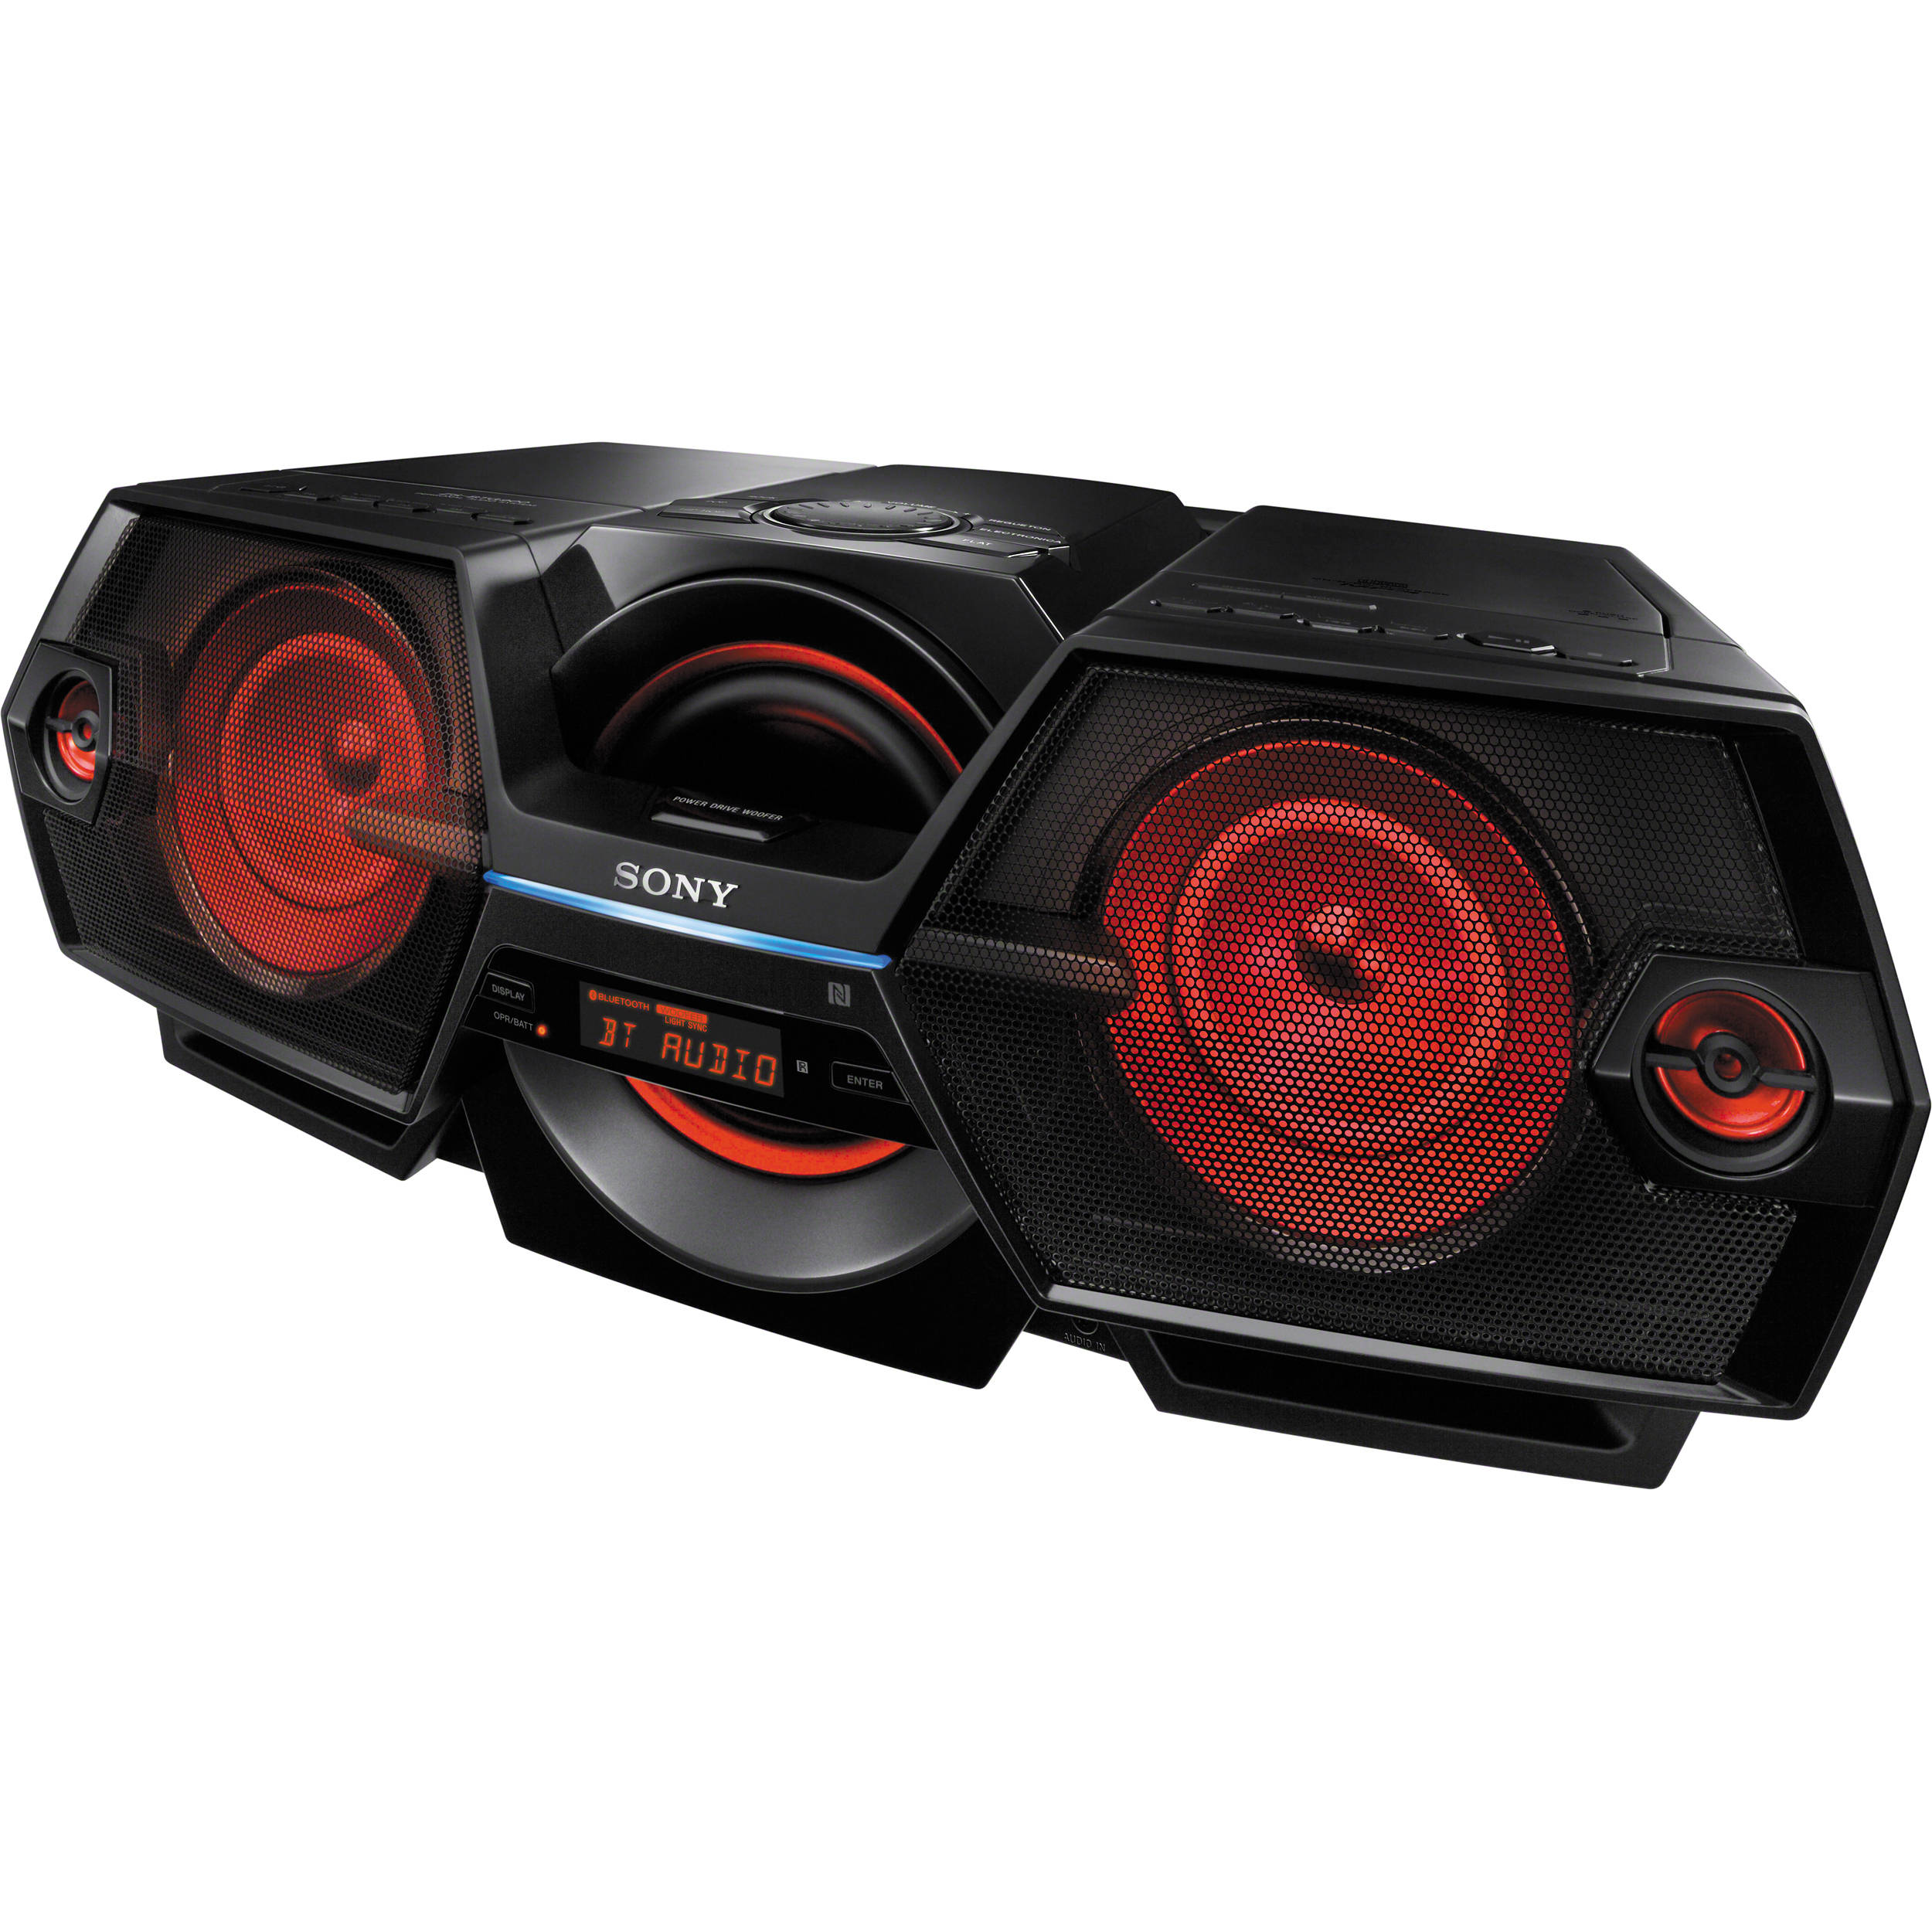 Sony zs btg900 wireless boombox system on boom box with cd player